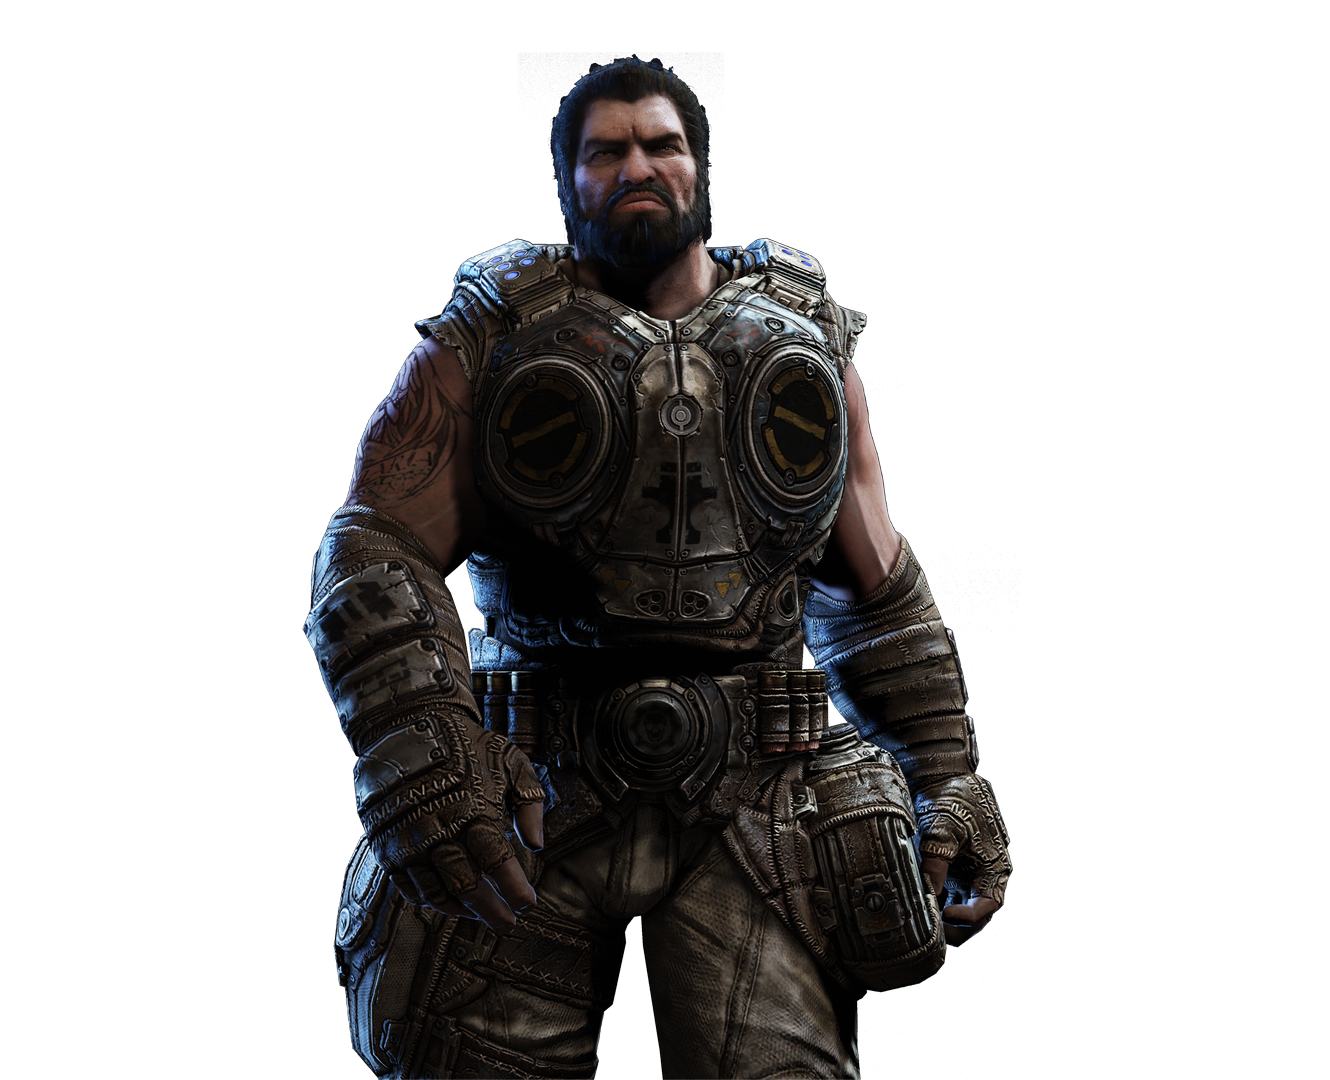 Gears of War PNG Transparent Image - Gears Of War PNG